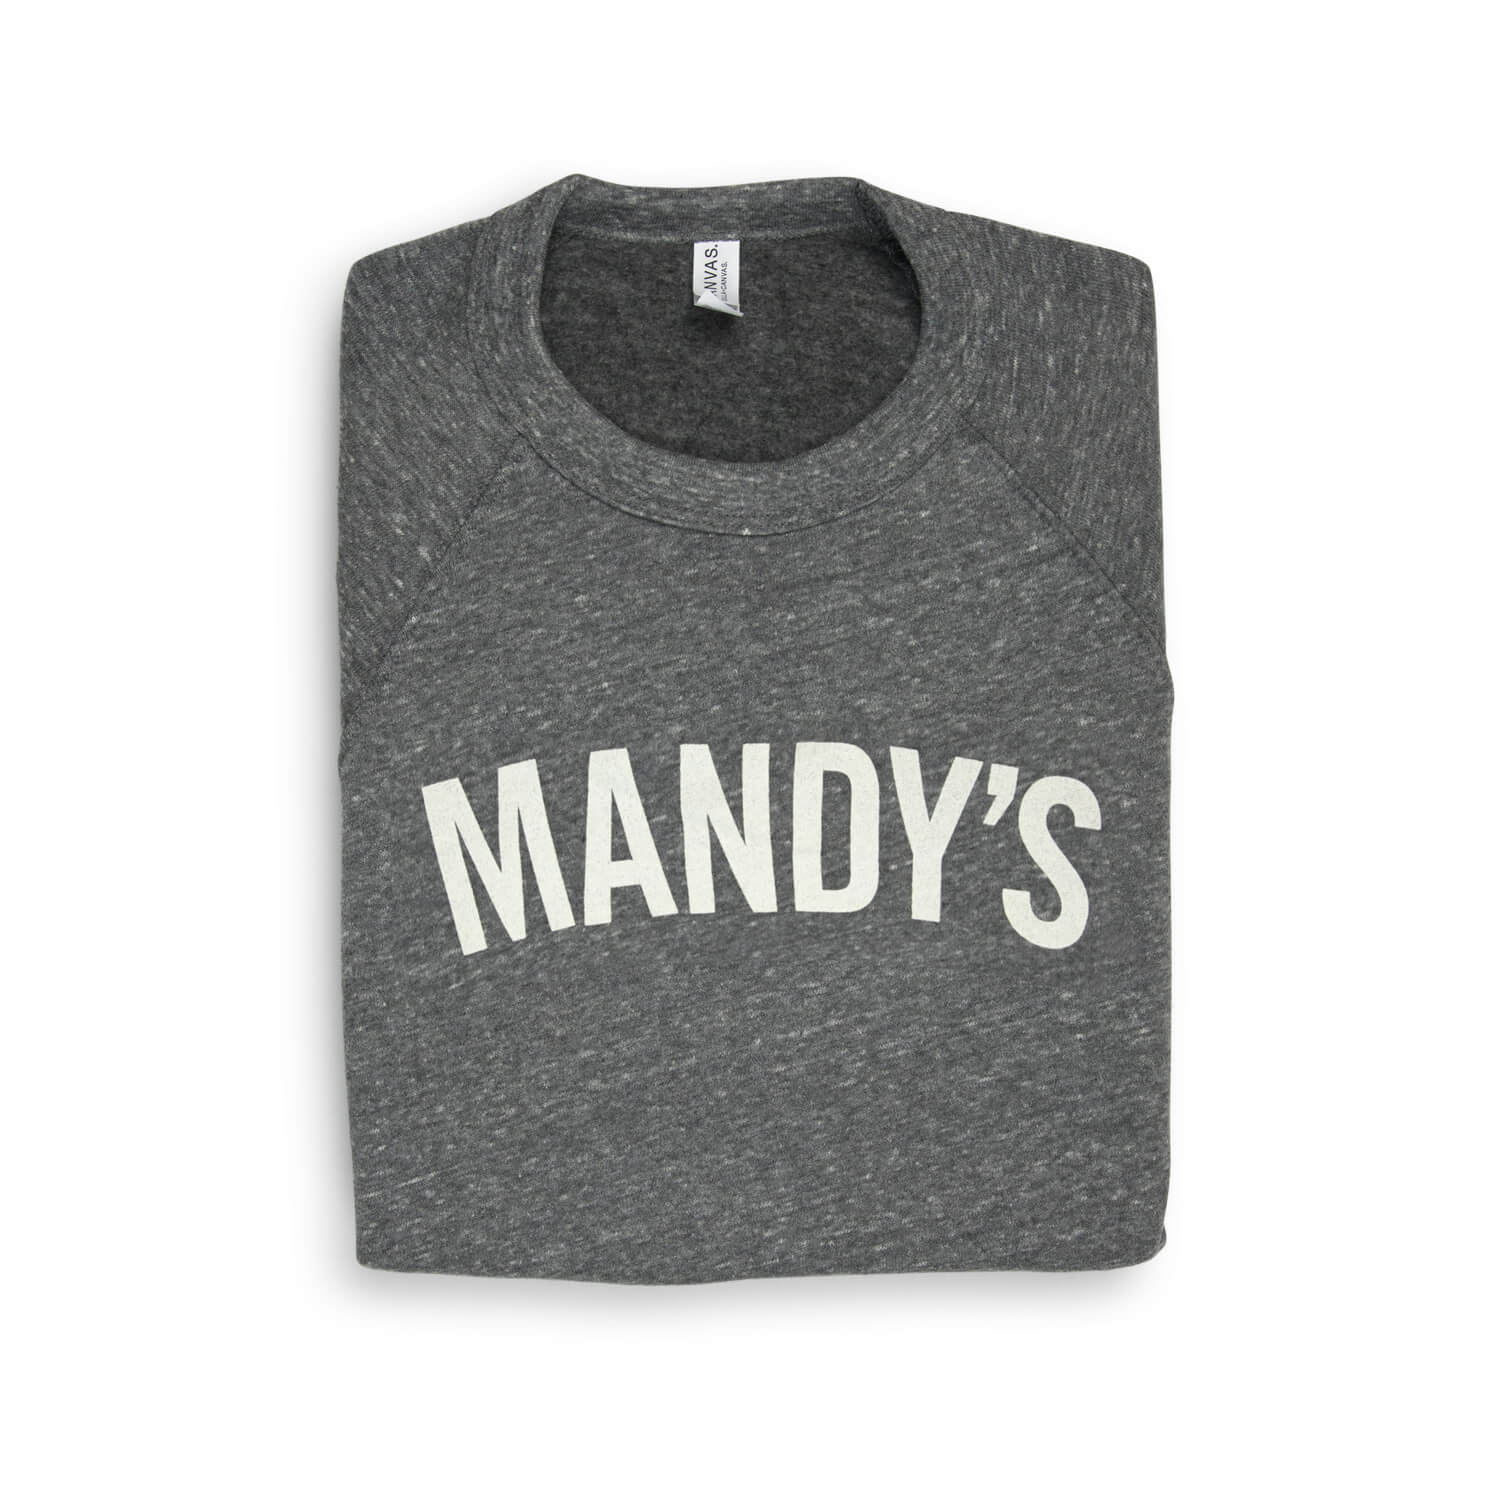 Mandy's Crewneck Sweatshirt